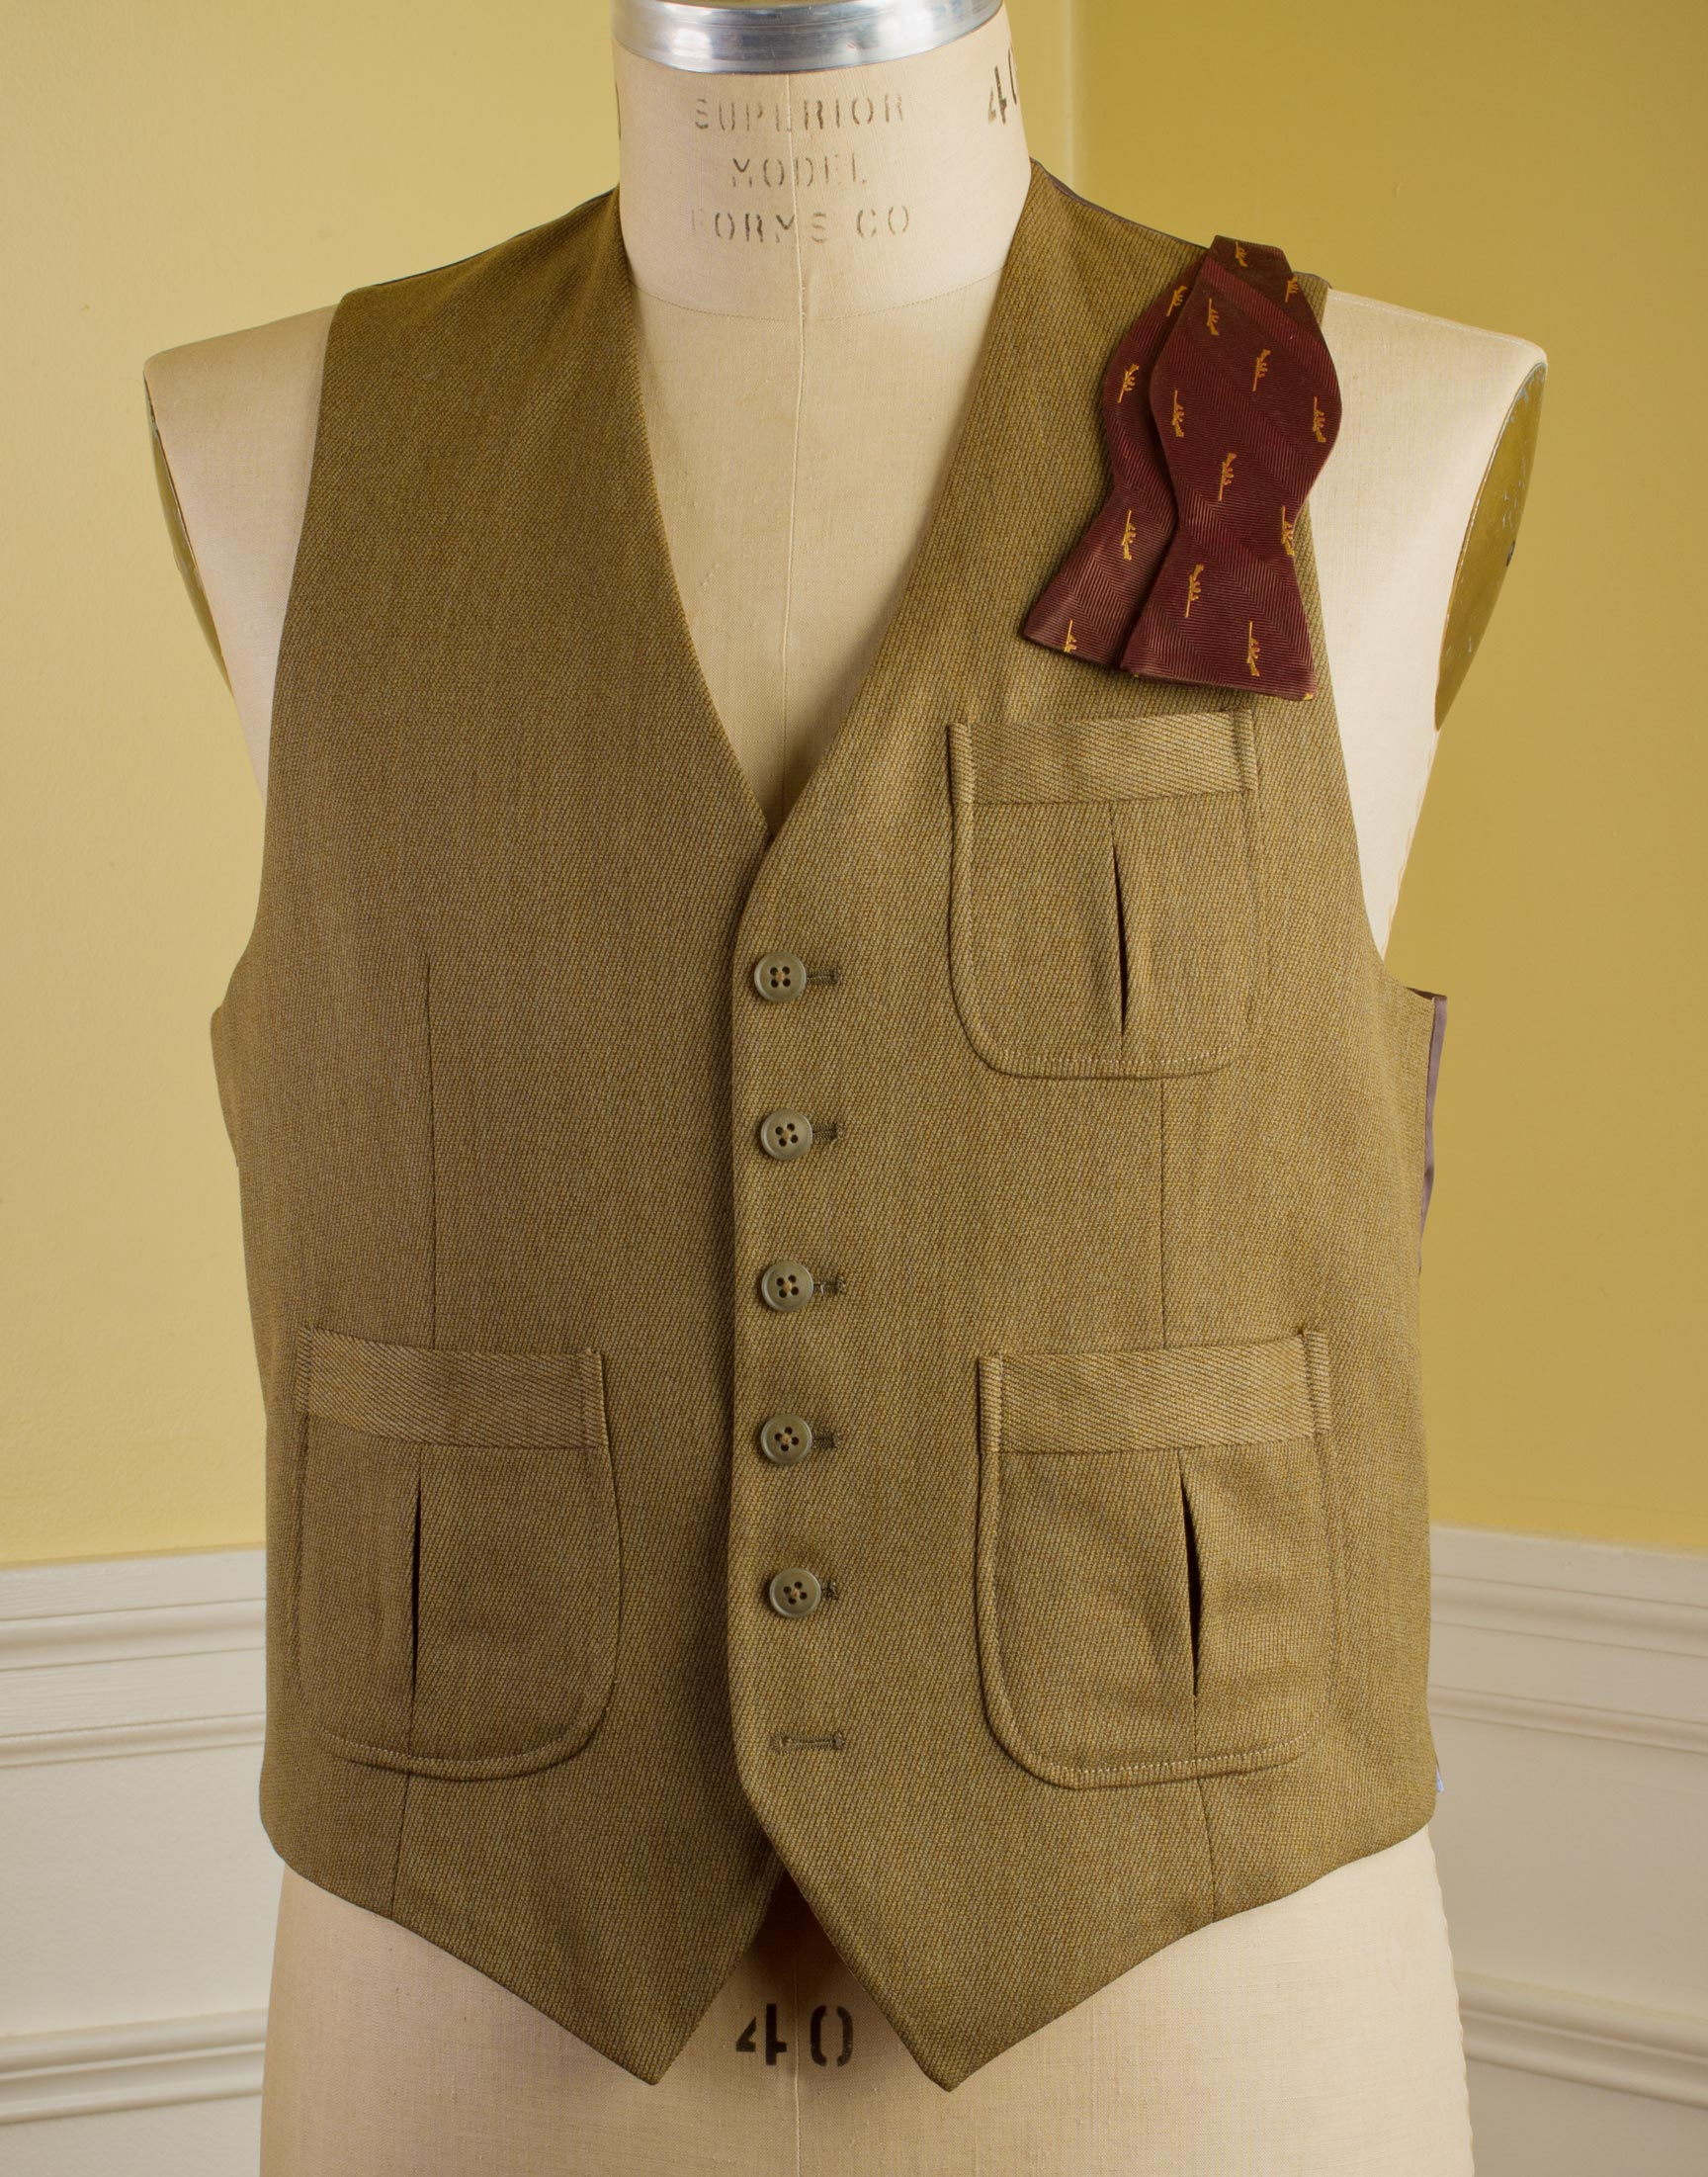 patch-pocket-vest-coat